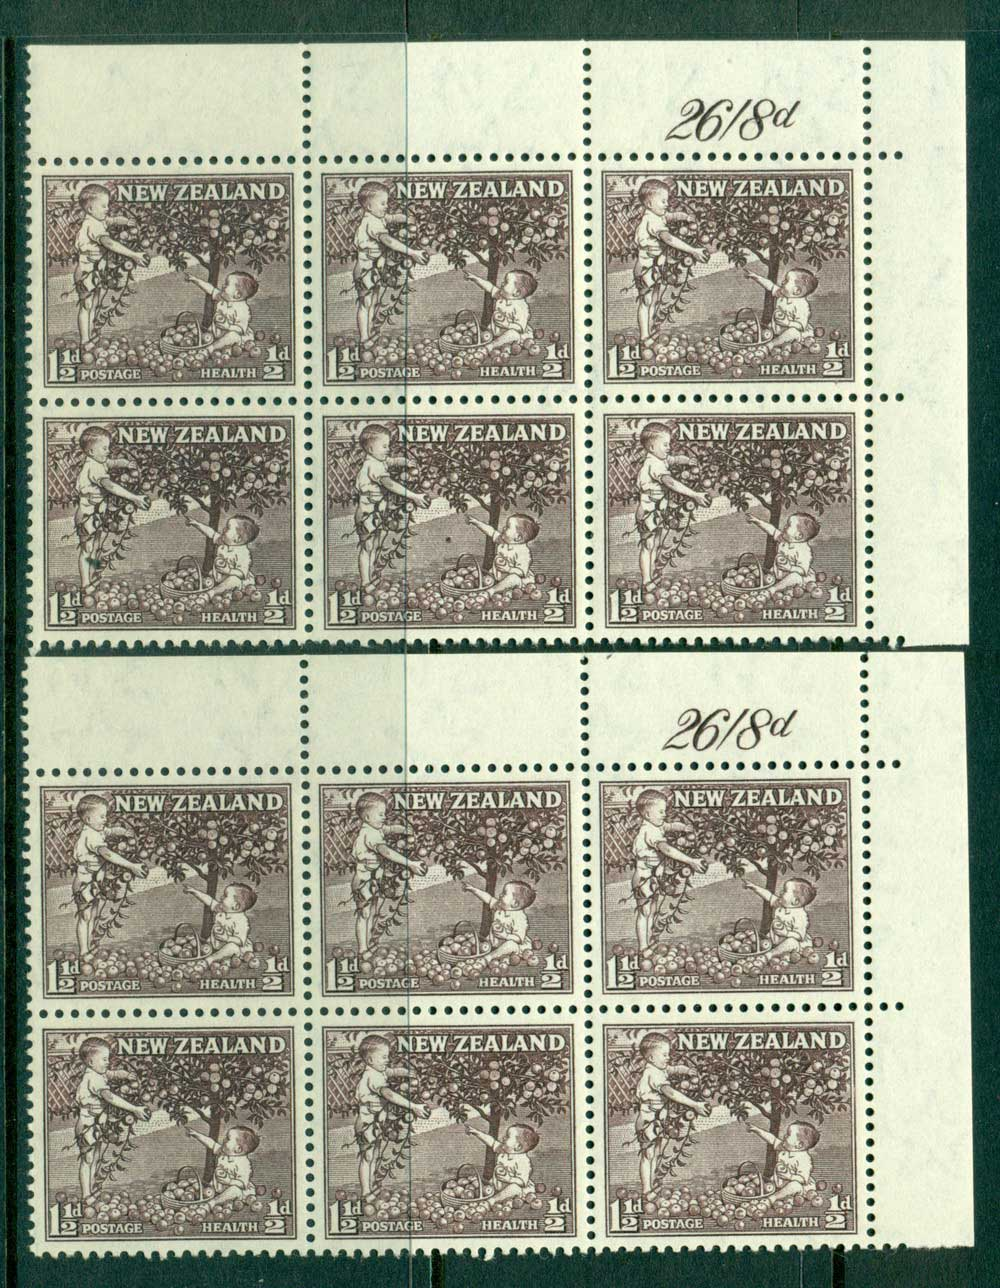 New Zealand 1956 1�d Health Apple Tree Deep Sepia + Purple Sepia Sheet Value Blocks 6 MH/MUH Lot25782